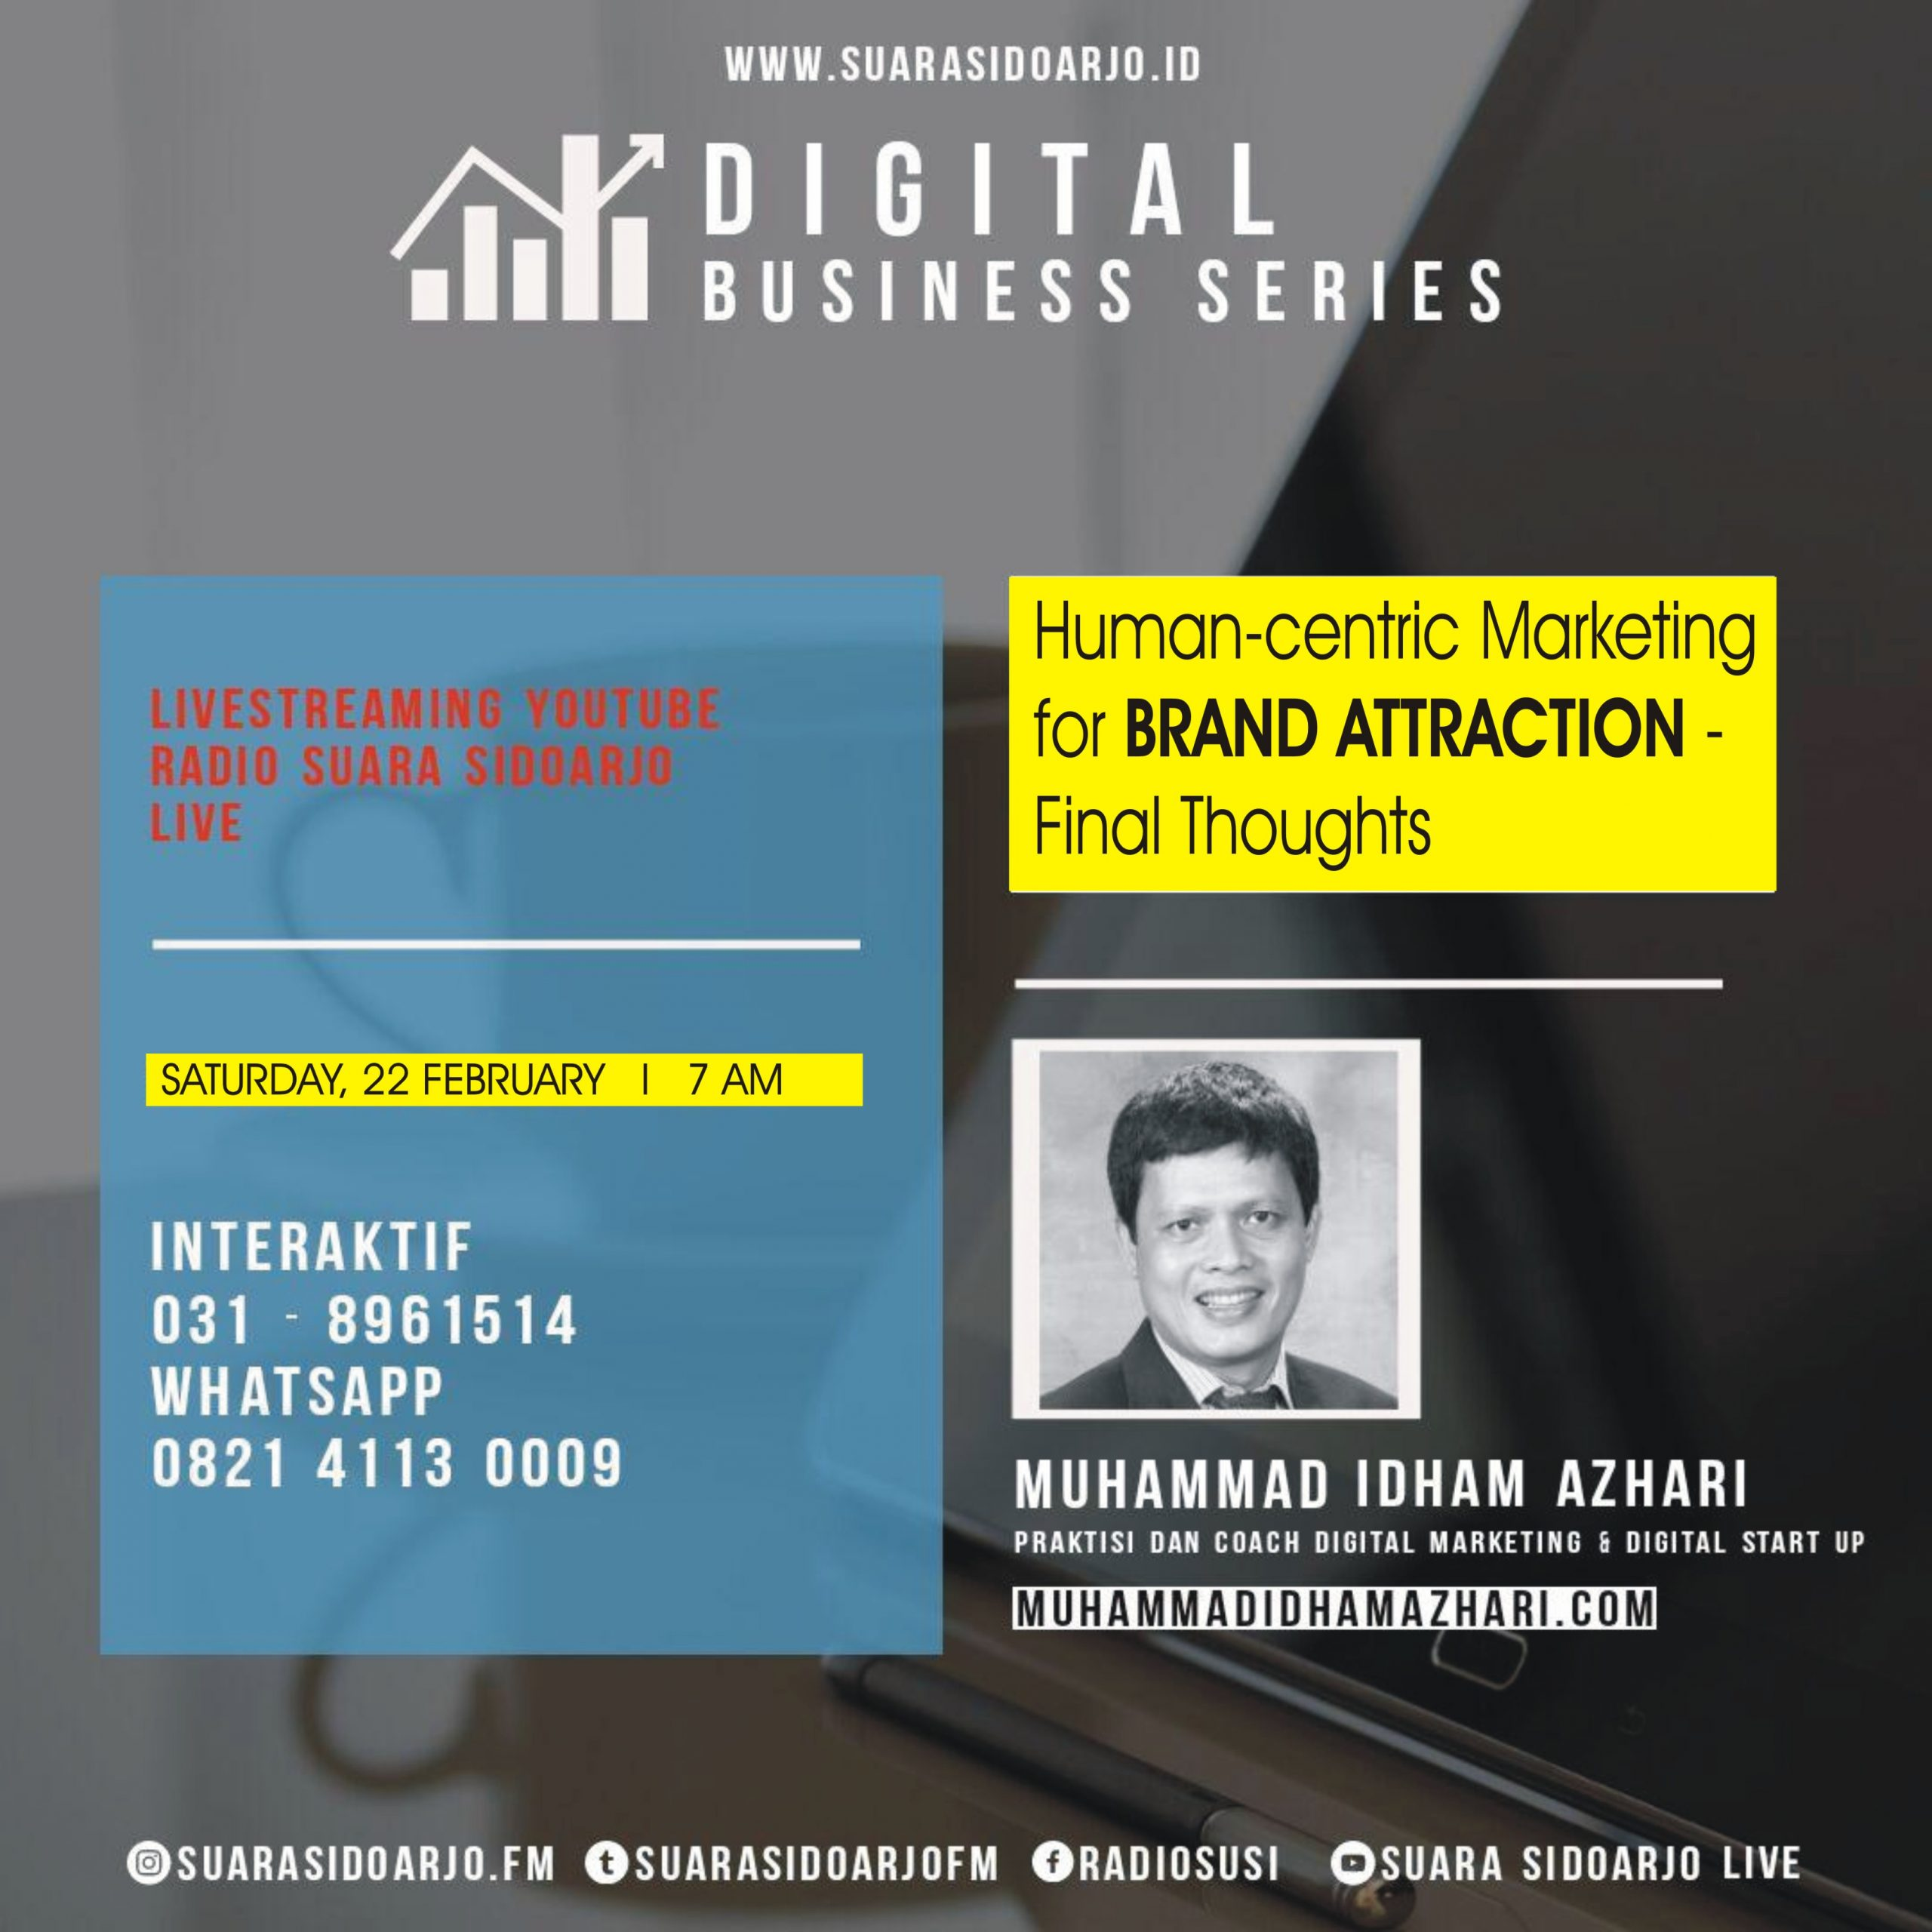 Human-centric Marketing for BRAND ATTRACTION - Final Thoughts by Muhammad Idham Azhari